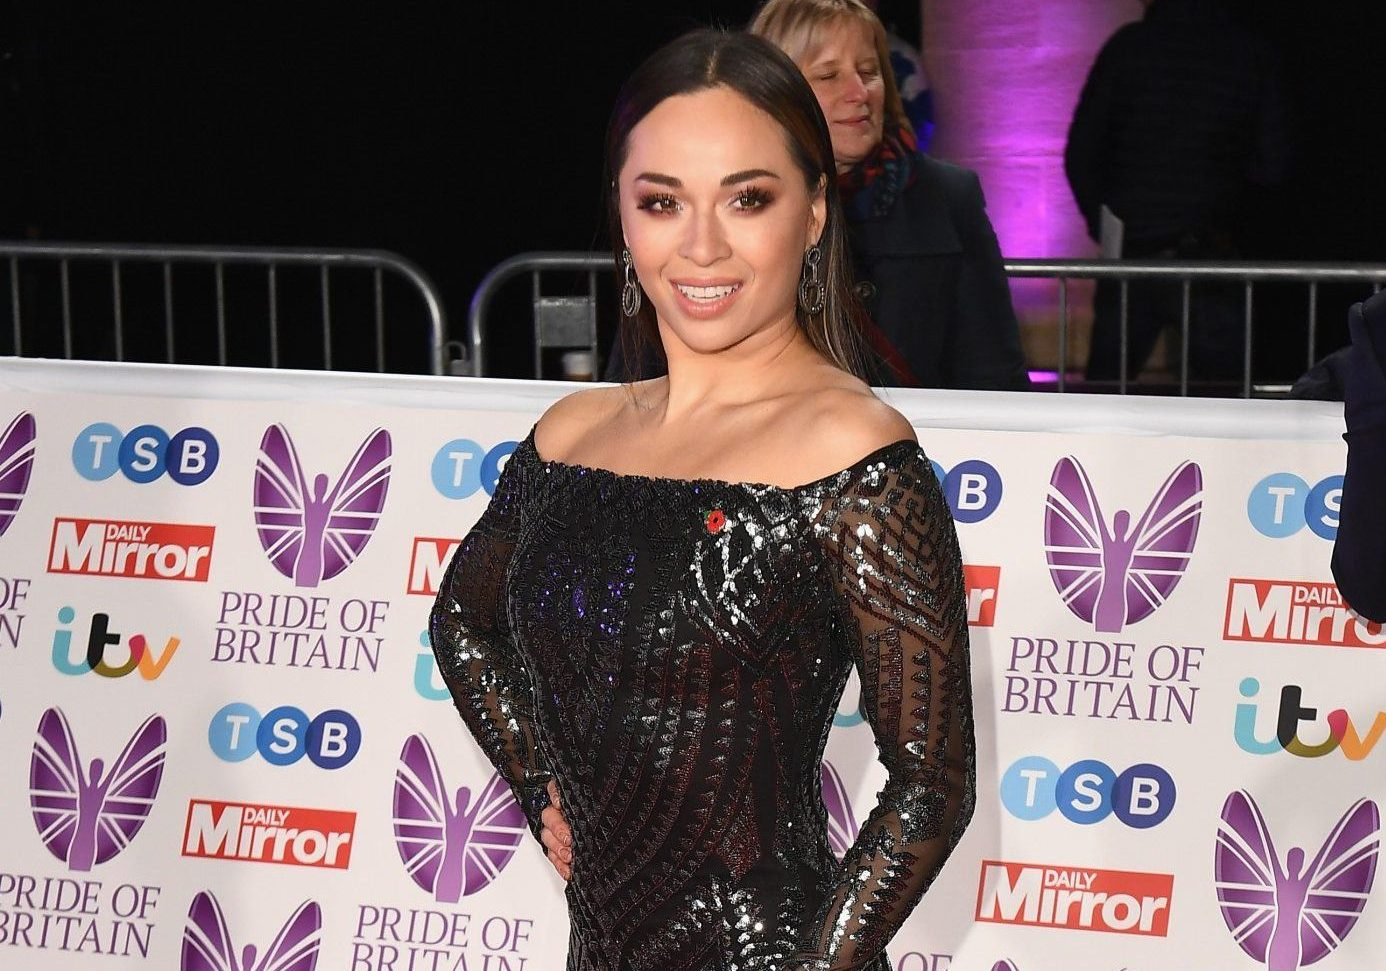 LONDON, ENGLAND - OCTOBER 29: Katya Jones attends the Pride of Britain Awards 2018 at The Grosvenor House Hotel on October 29, 2018 in London, England. (Photo by Jeff Spicer/Getty Images)